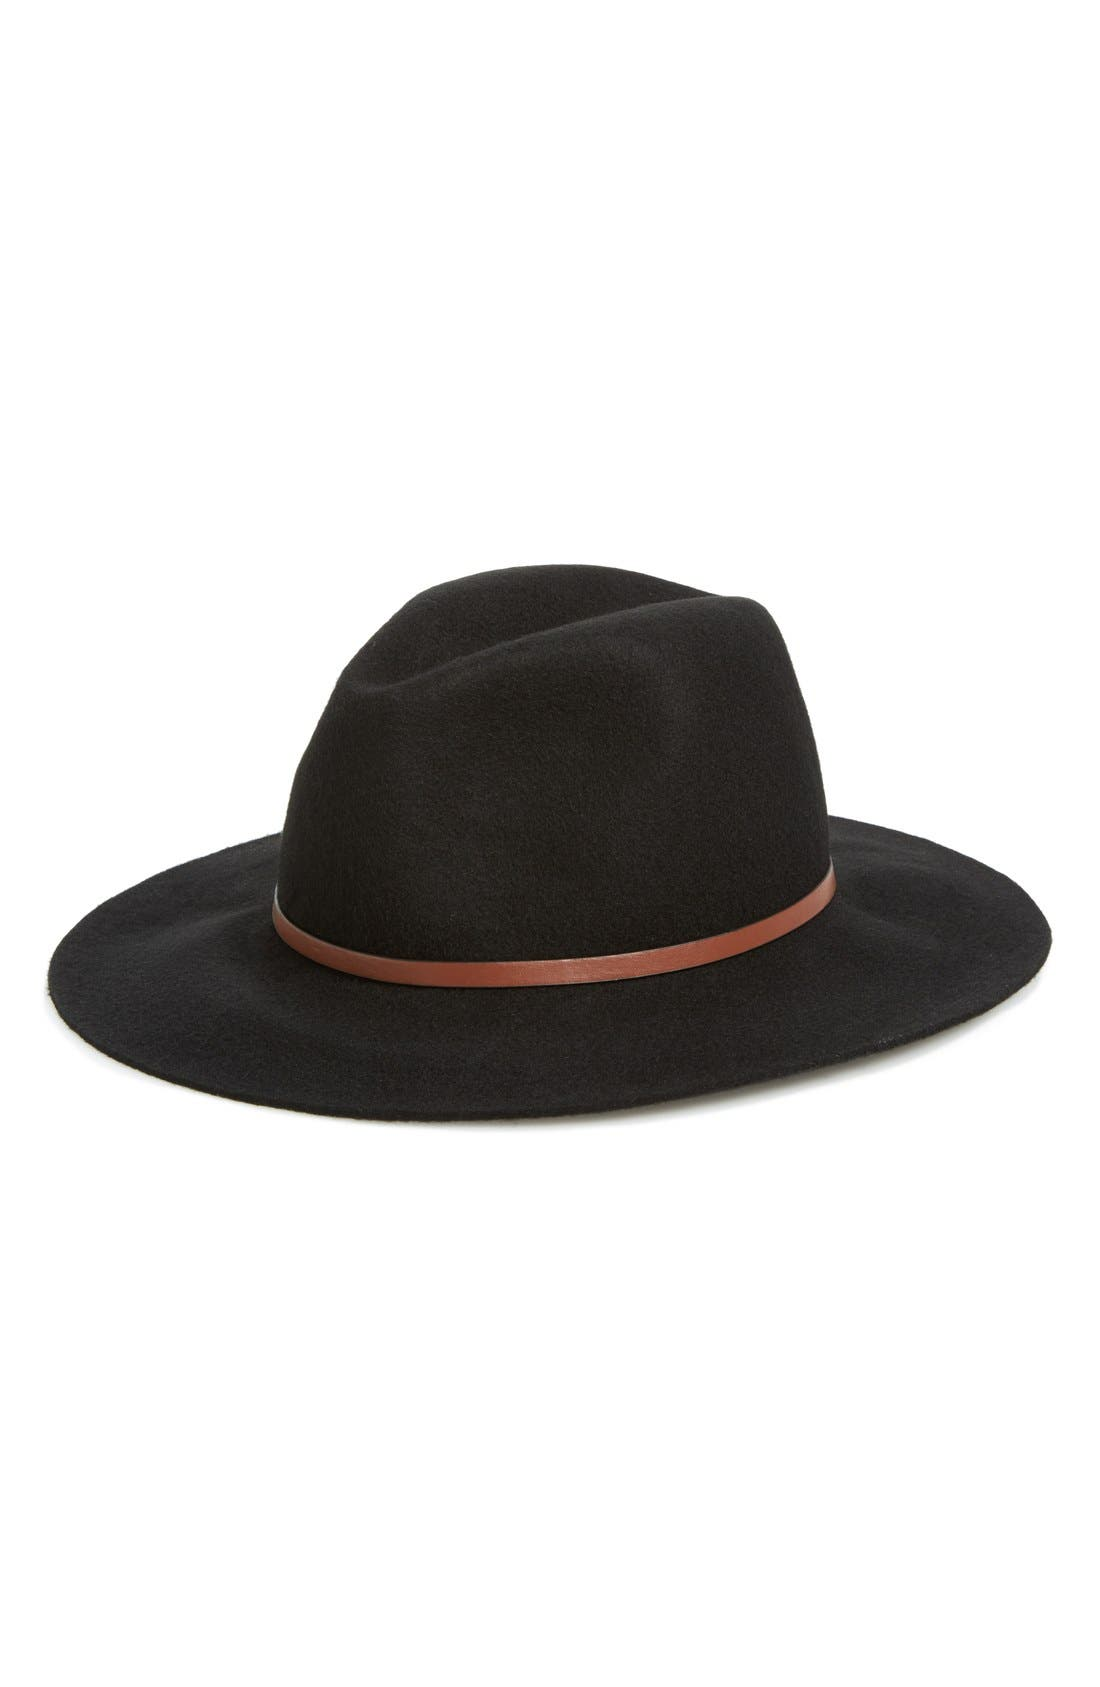 HINGE, Faux Leather Trim Wool Felt Panama Hat, Main thumbnail 1, color, 001